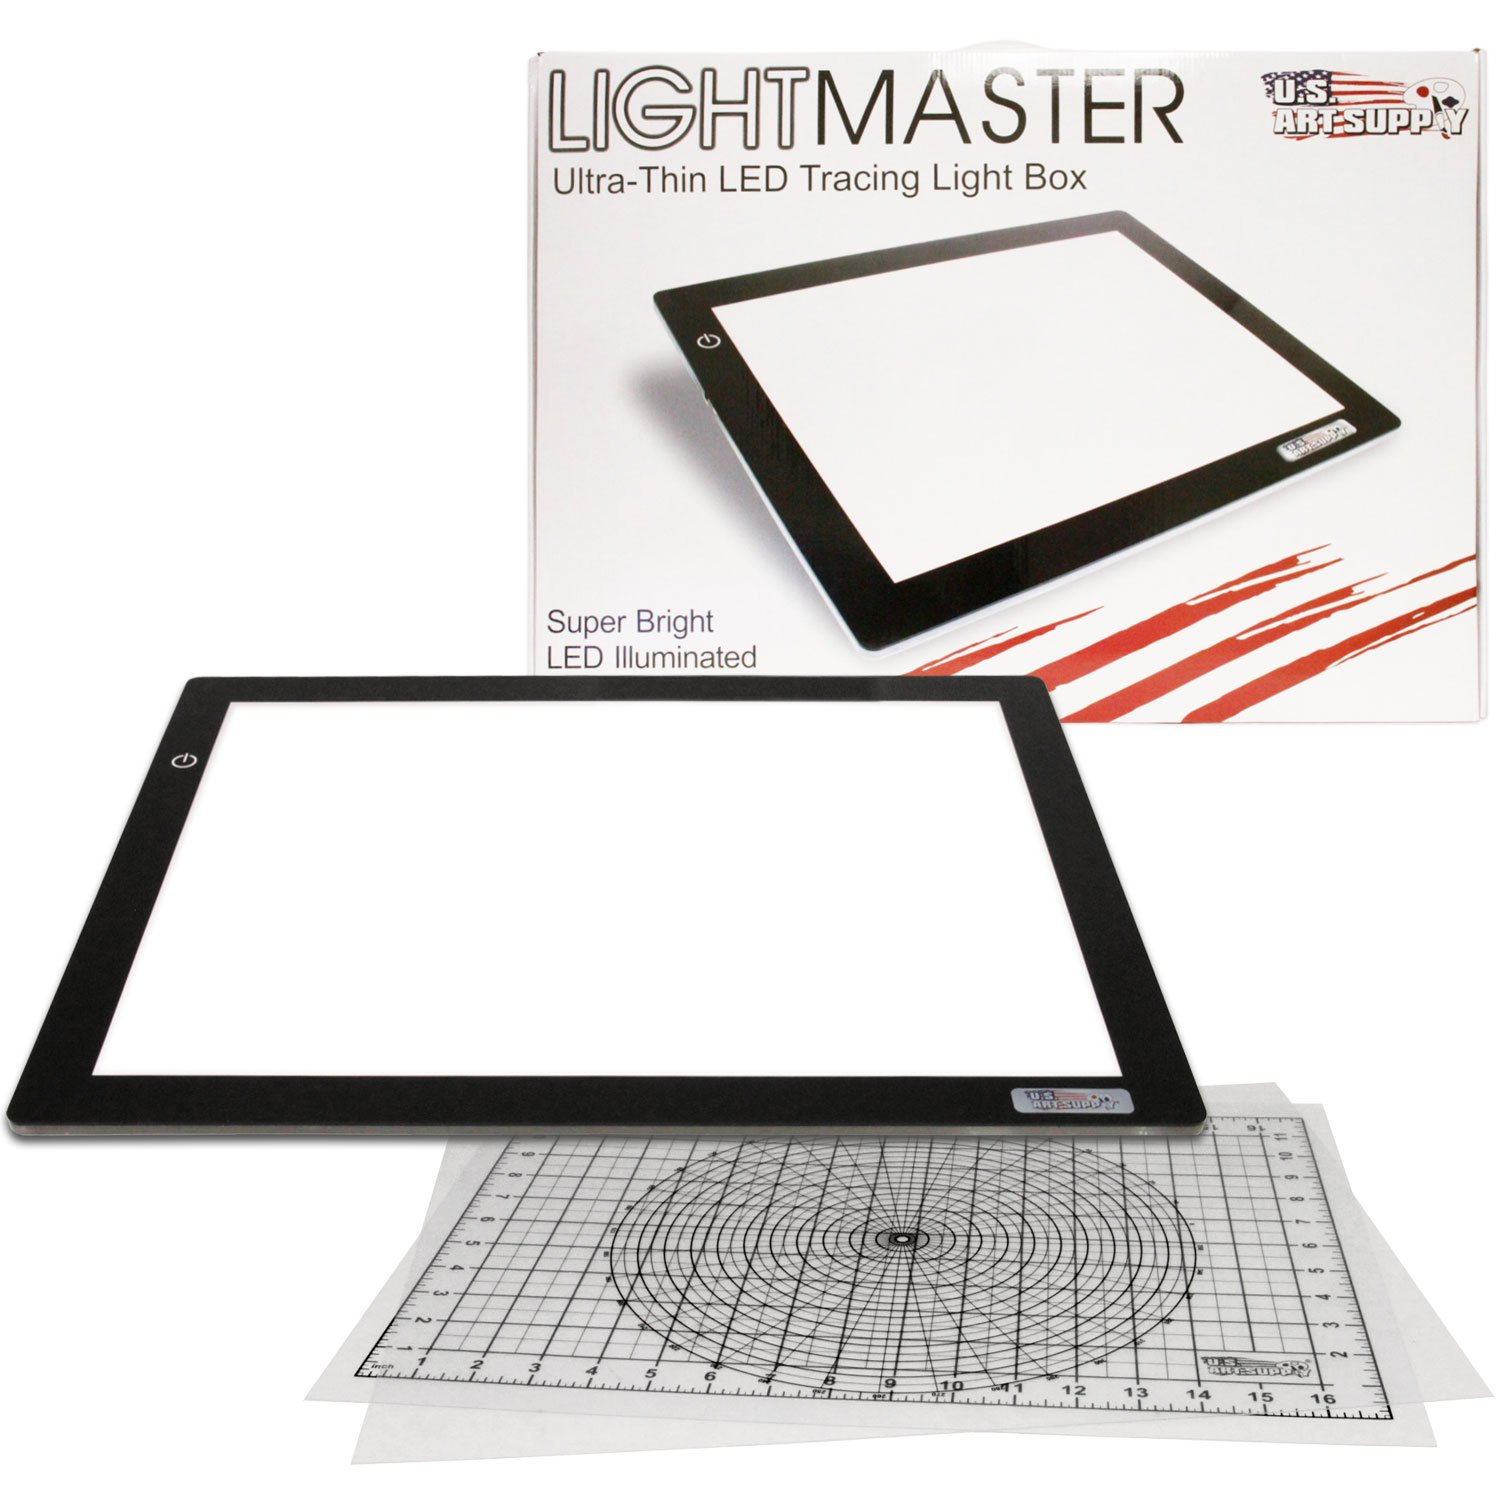 US ART SUPPLY Lightmaster Large 24.3'' Diagonal Professional (A3) 12''x17'' LED Lightbox Board- 12-Volt Super-Bright Ultra-Thin 3/8'' Profile Light Box Pad with 110V AC Power Adapter & Dimmable LED Lamps. Now Includes for FREE: 1 Measuring Overlay Grid & 1 Ci